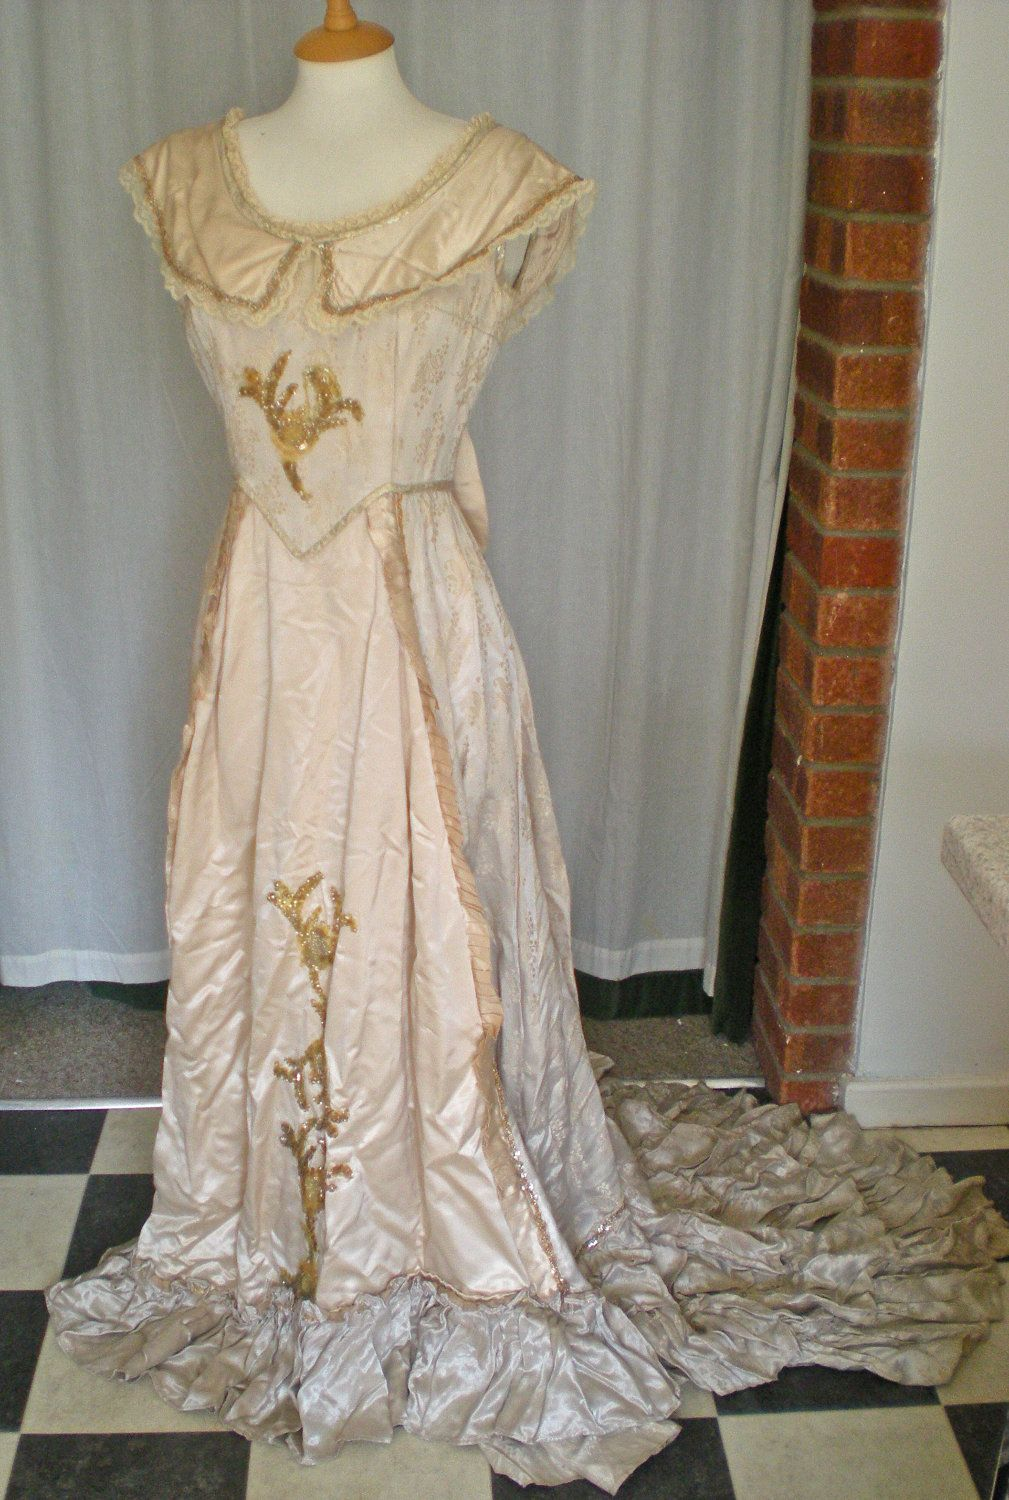 Edwardian style wedding gown with train, ruffles, bows and sequins ...